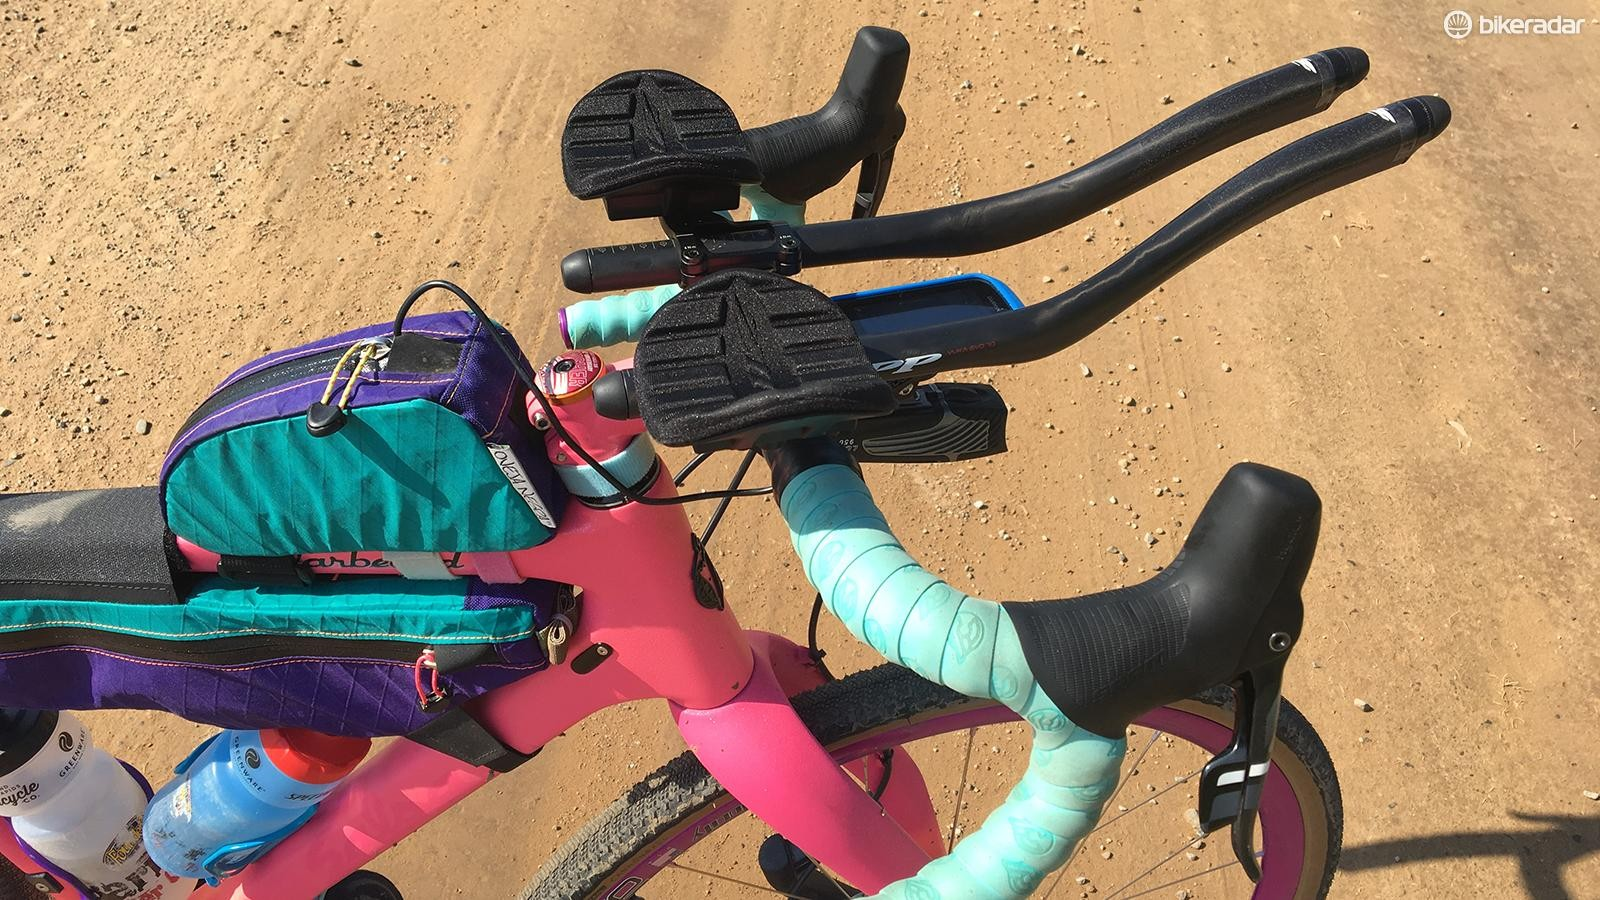 Clip-on aero bars allowed to grind out all 350 miles of the XL course